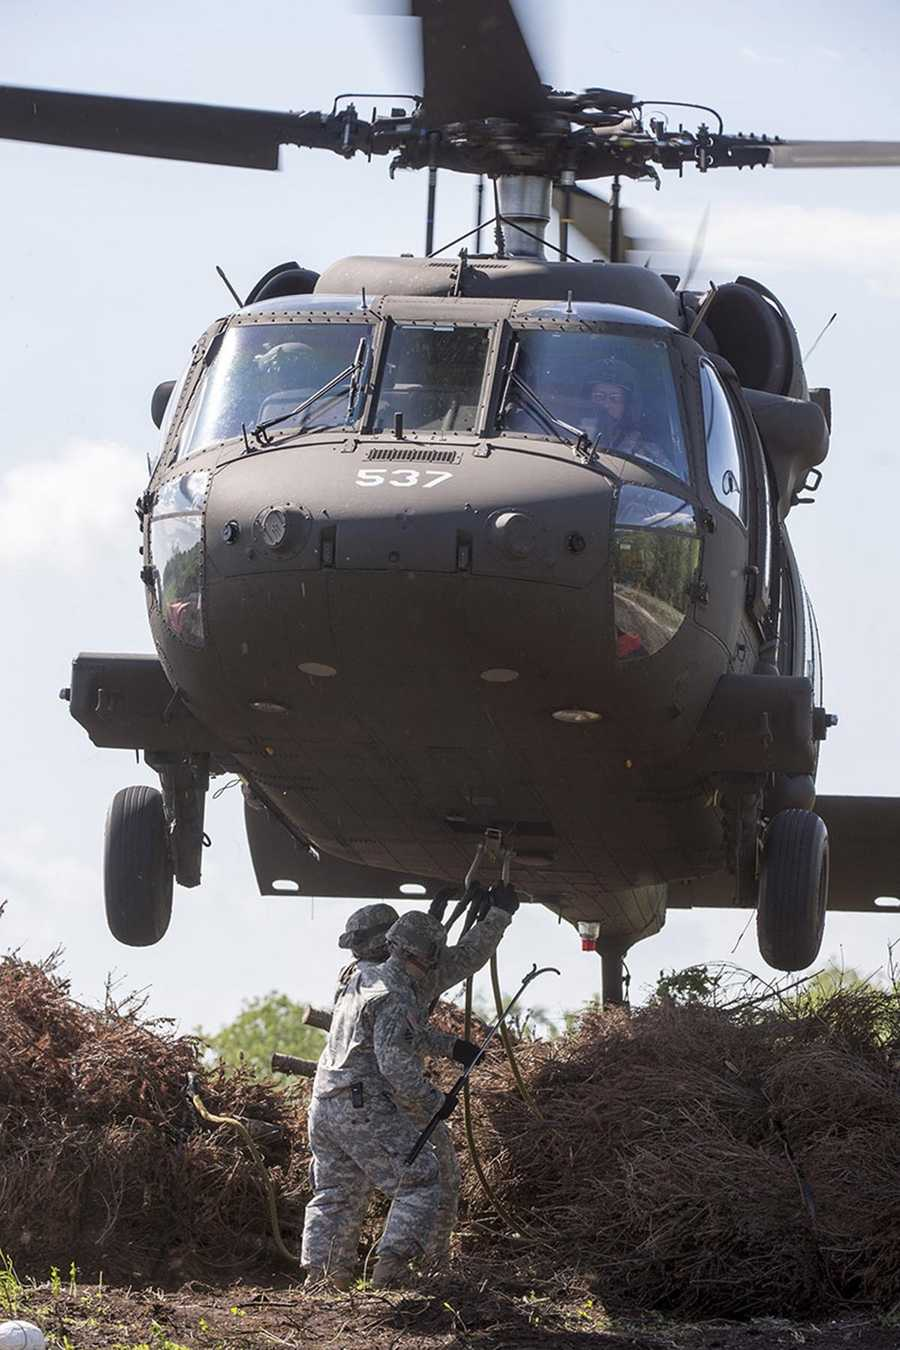 The Louisiana National Guard's 1st Assault Helicopter Battalion, 244th Aviation Regiment, the U.S. Fish and Wildlife Service and New Orleans officials participated in the annual Christmas Tree Drop in Bayou Sauvage in eastern New Orleans on Thursday.